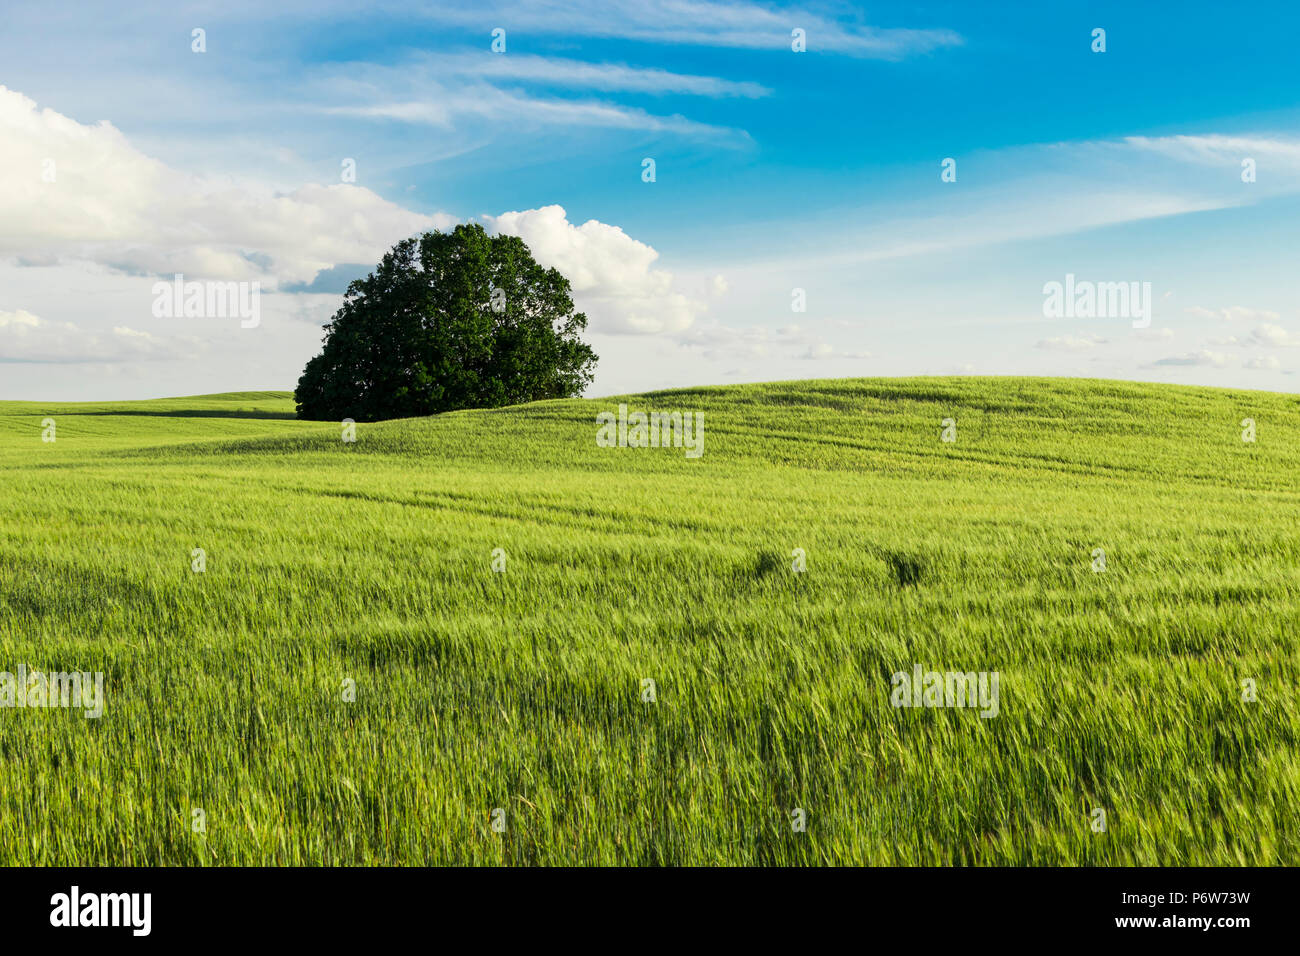 Greenfield view - Stock Image